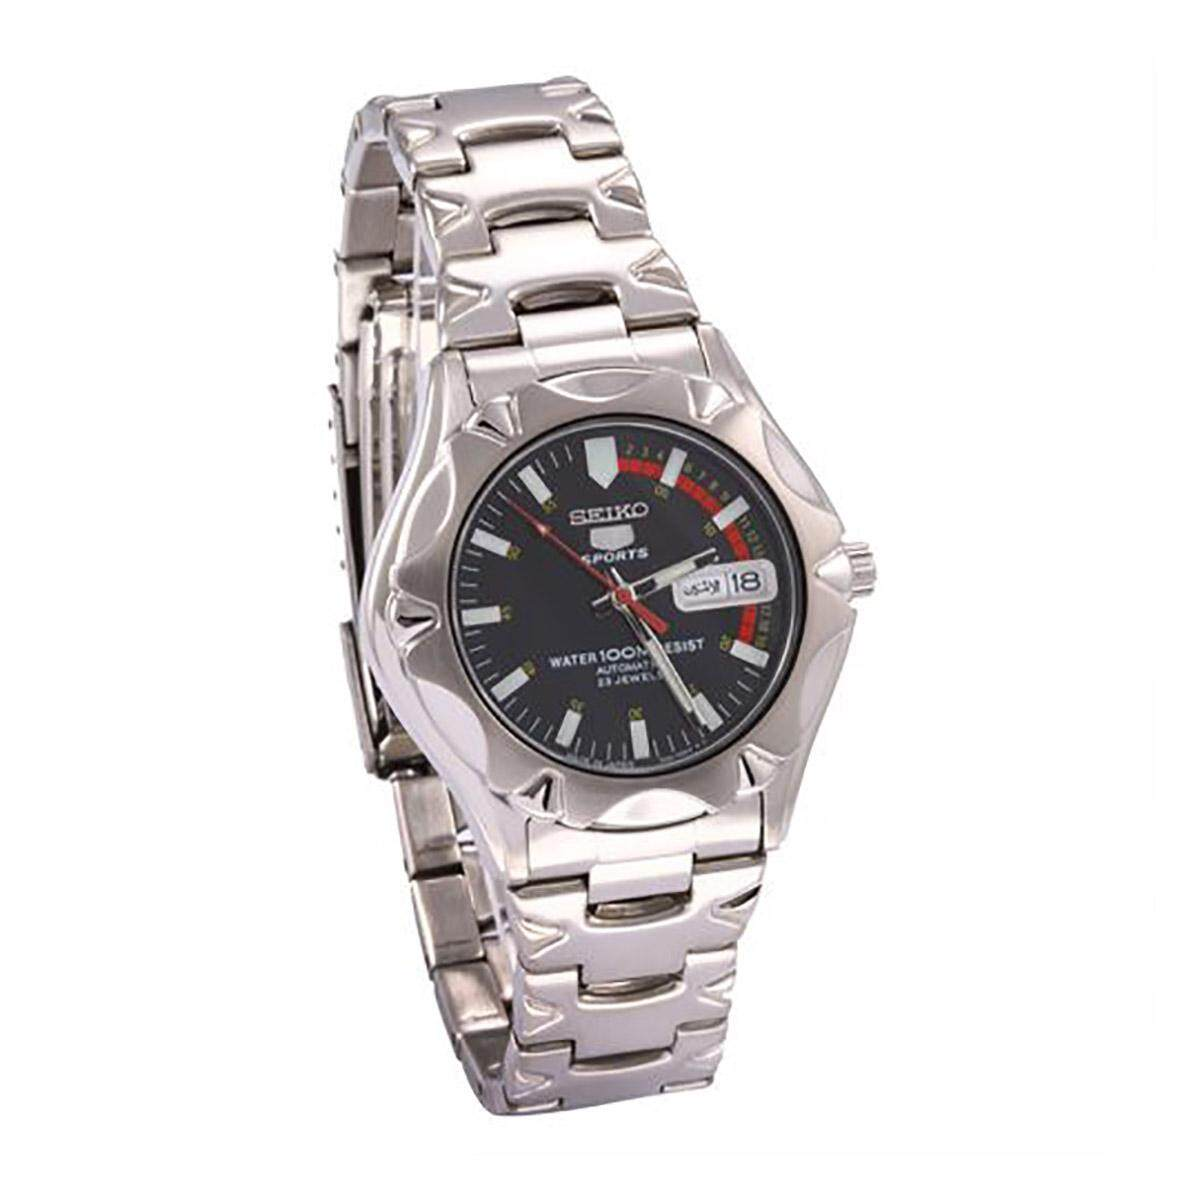 Seiko Men Watches Price In Malaysia Best Lazada Automatic Limited Edition Diver 200m Srp510k1 5 Silver Stainless Steel Case Bracelet Mens Japan Snz449j1